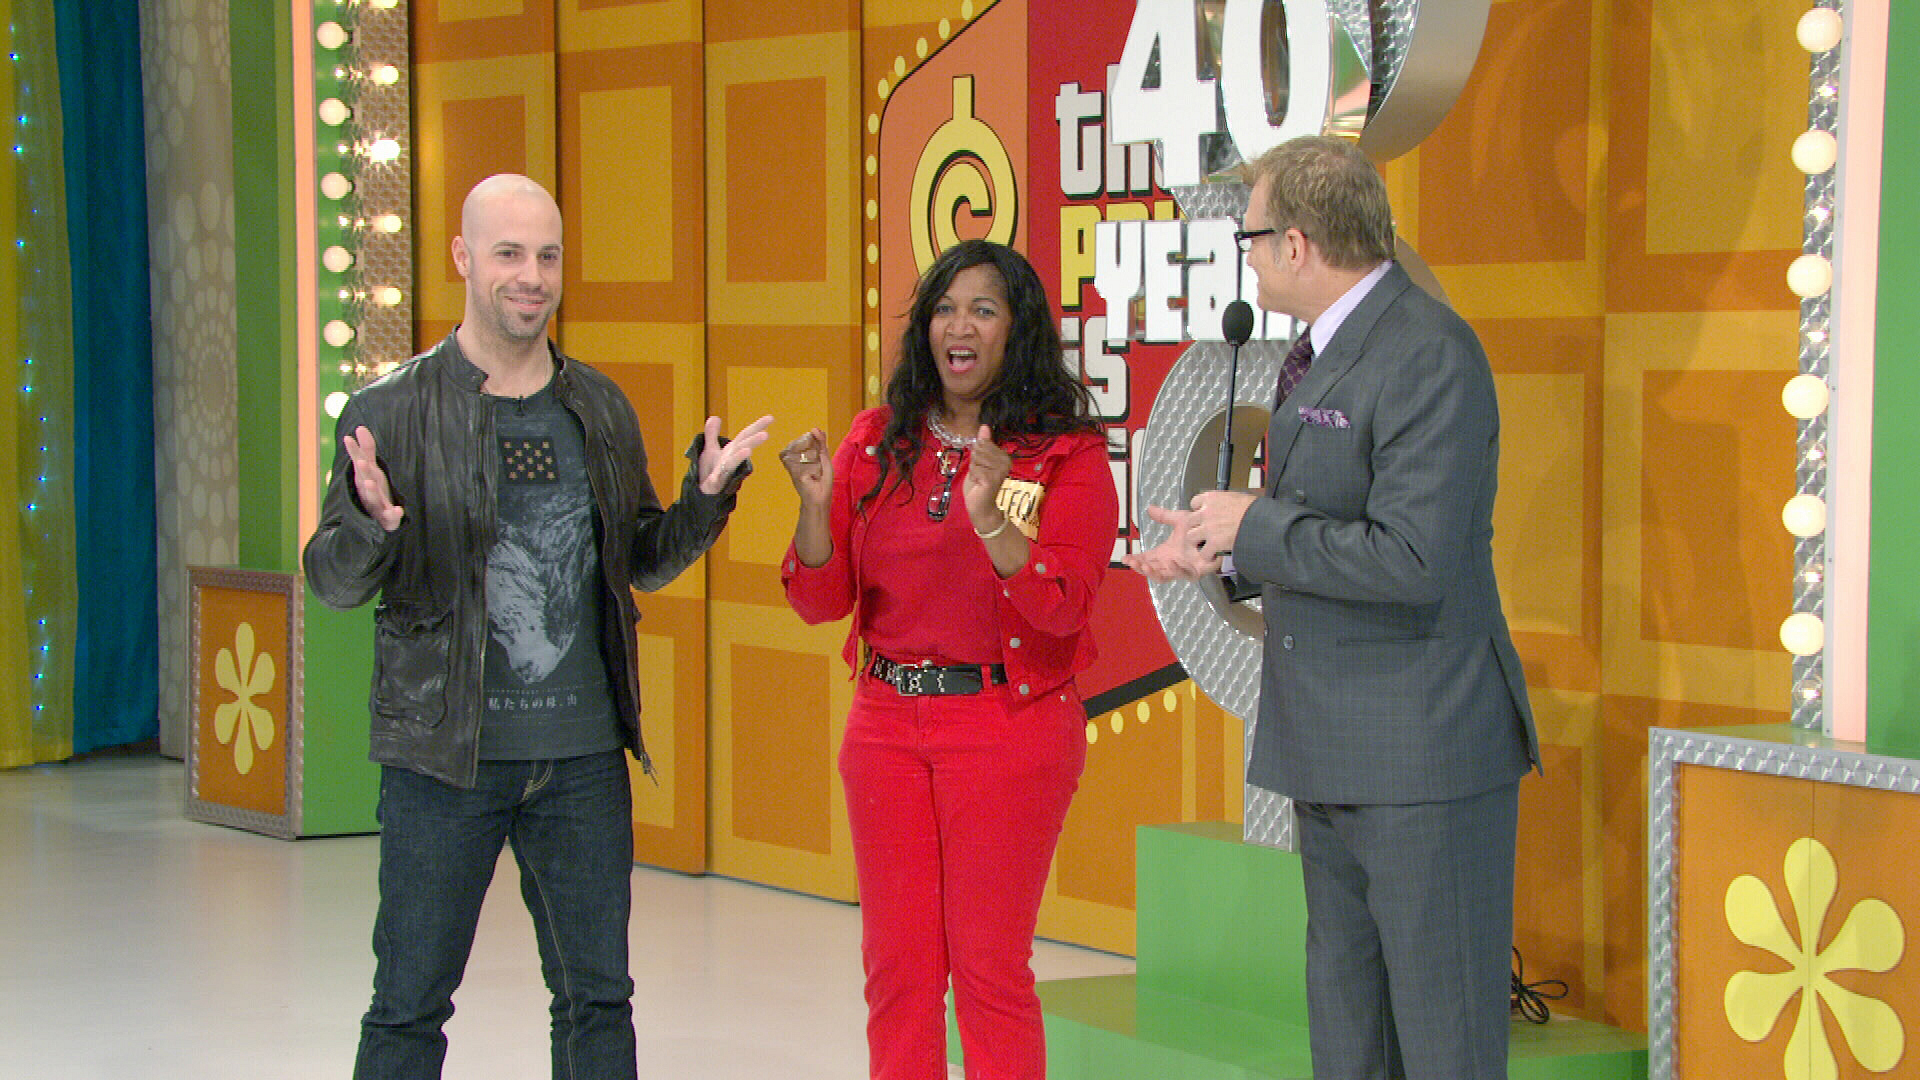 Chris Daughtry on the TPIR stage